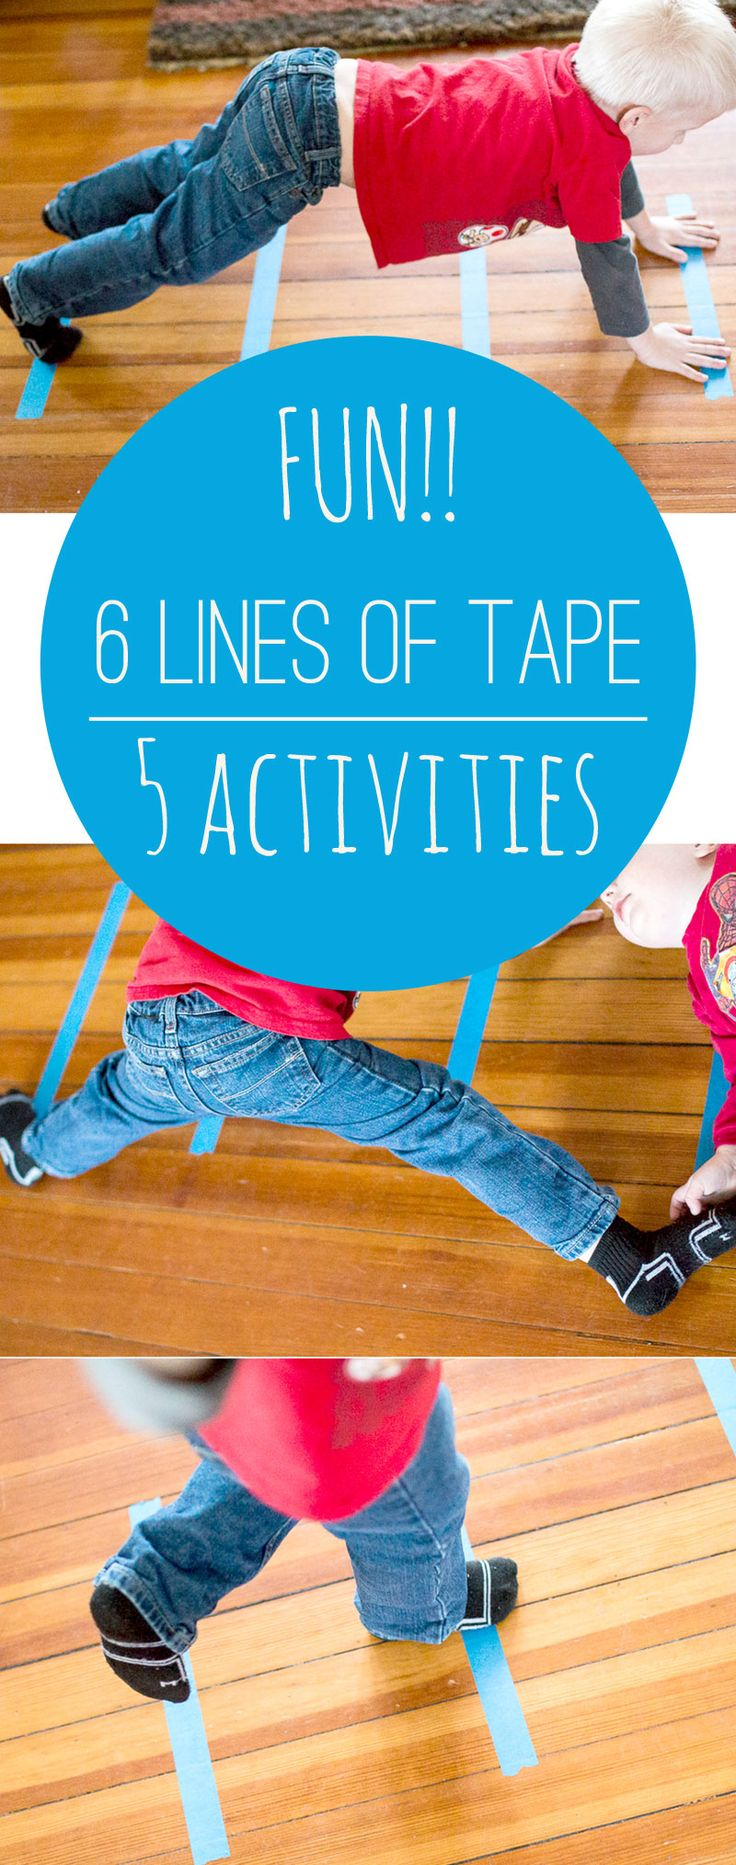 Genius! 5 things to do with the same 6 lines of tape - so simple!